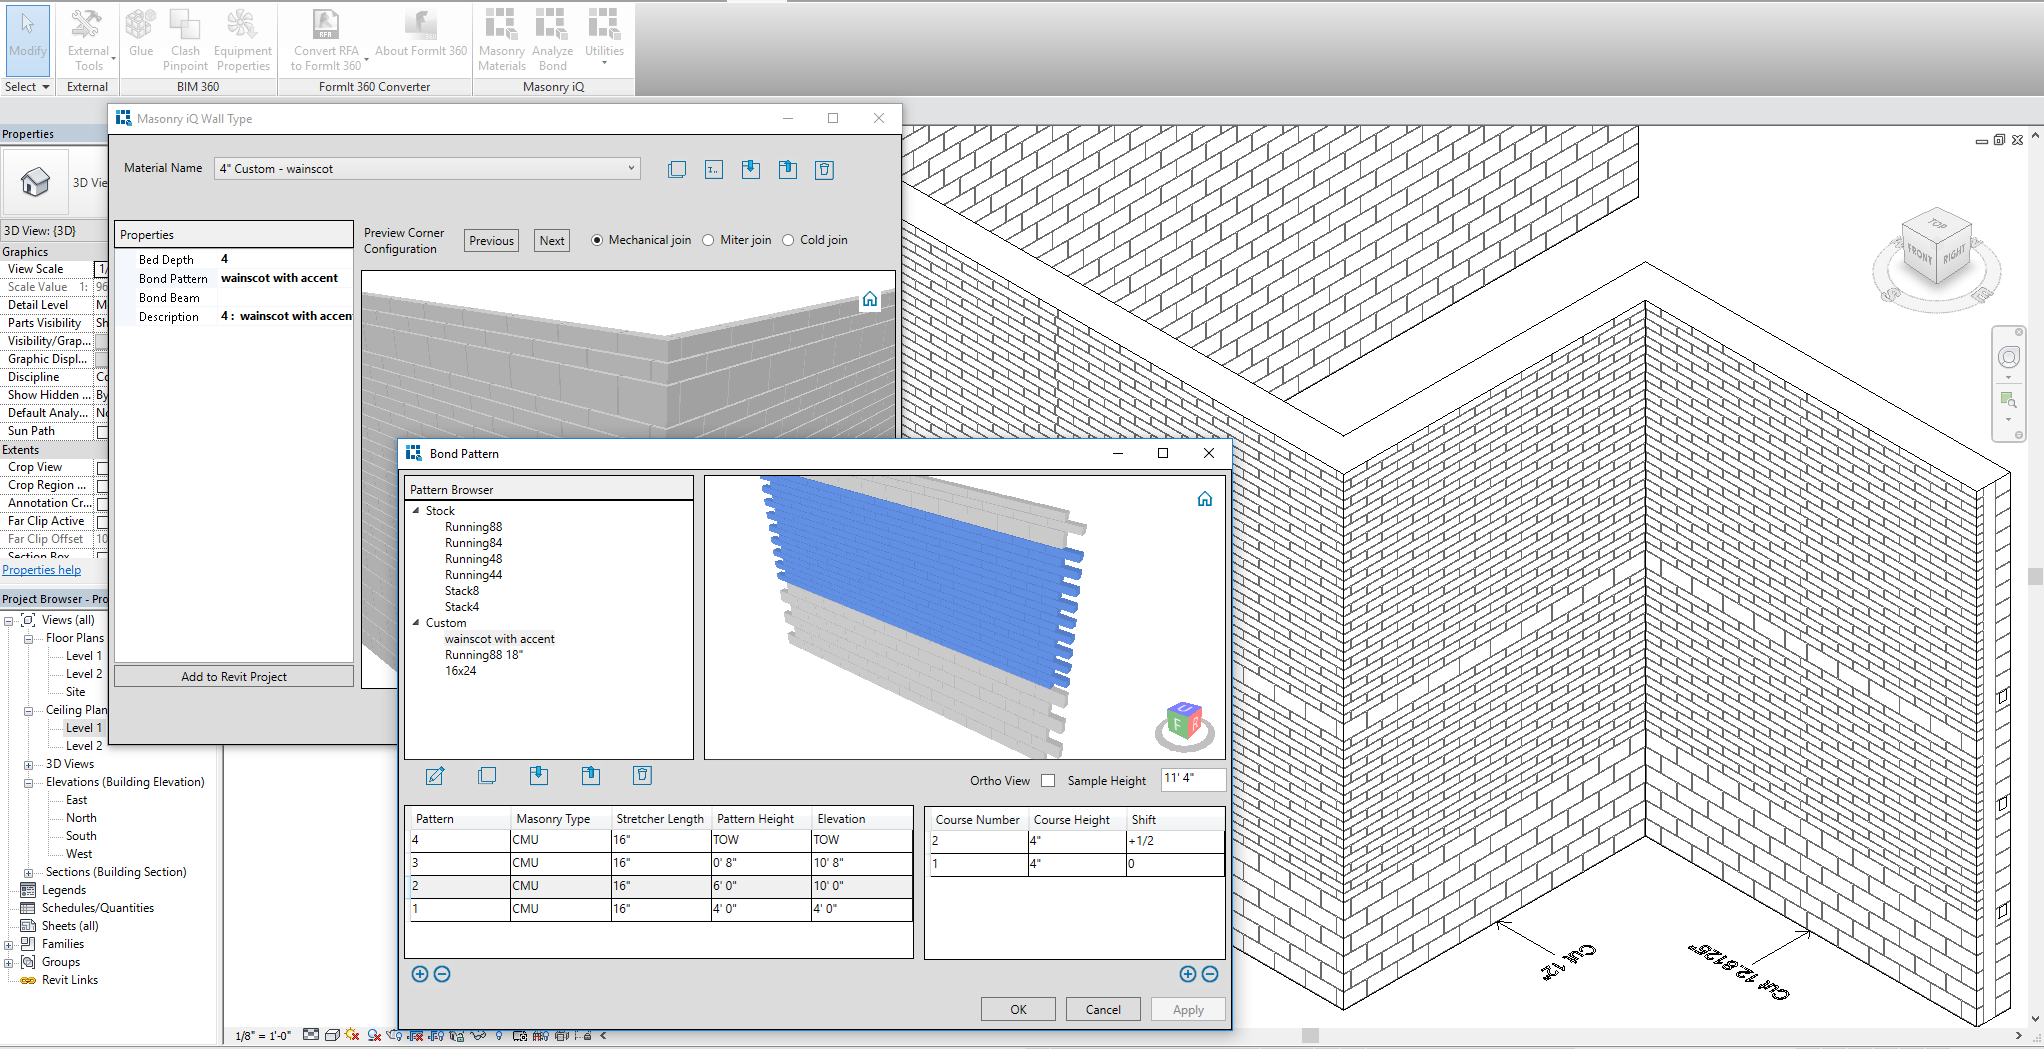 Masonry iQ for Revit 19 17 0 1 Download - ArchSupply com